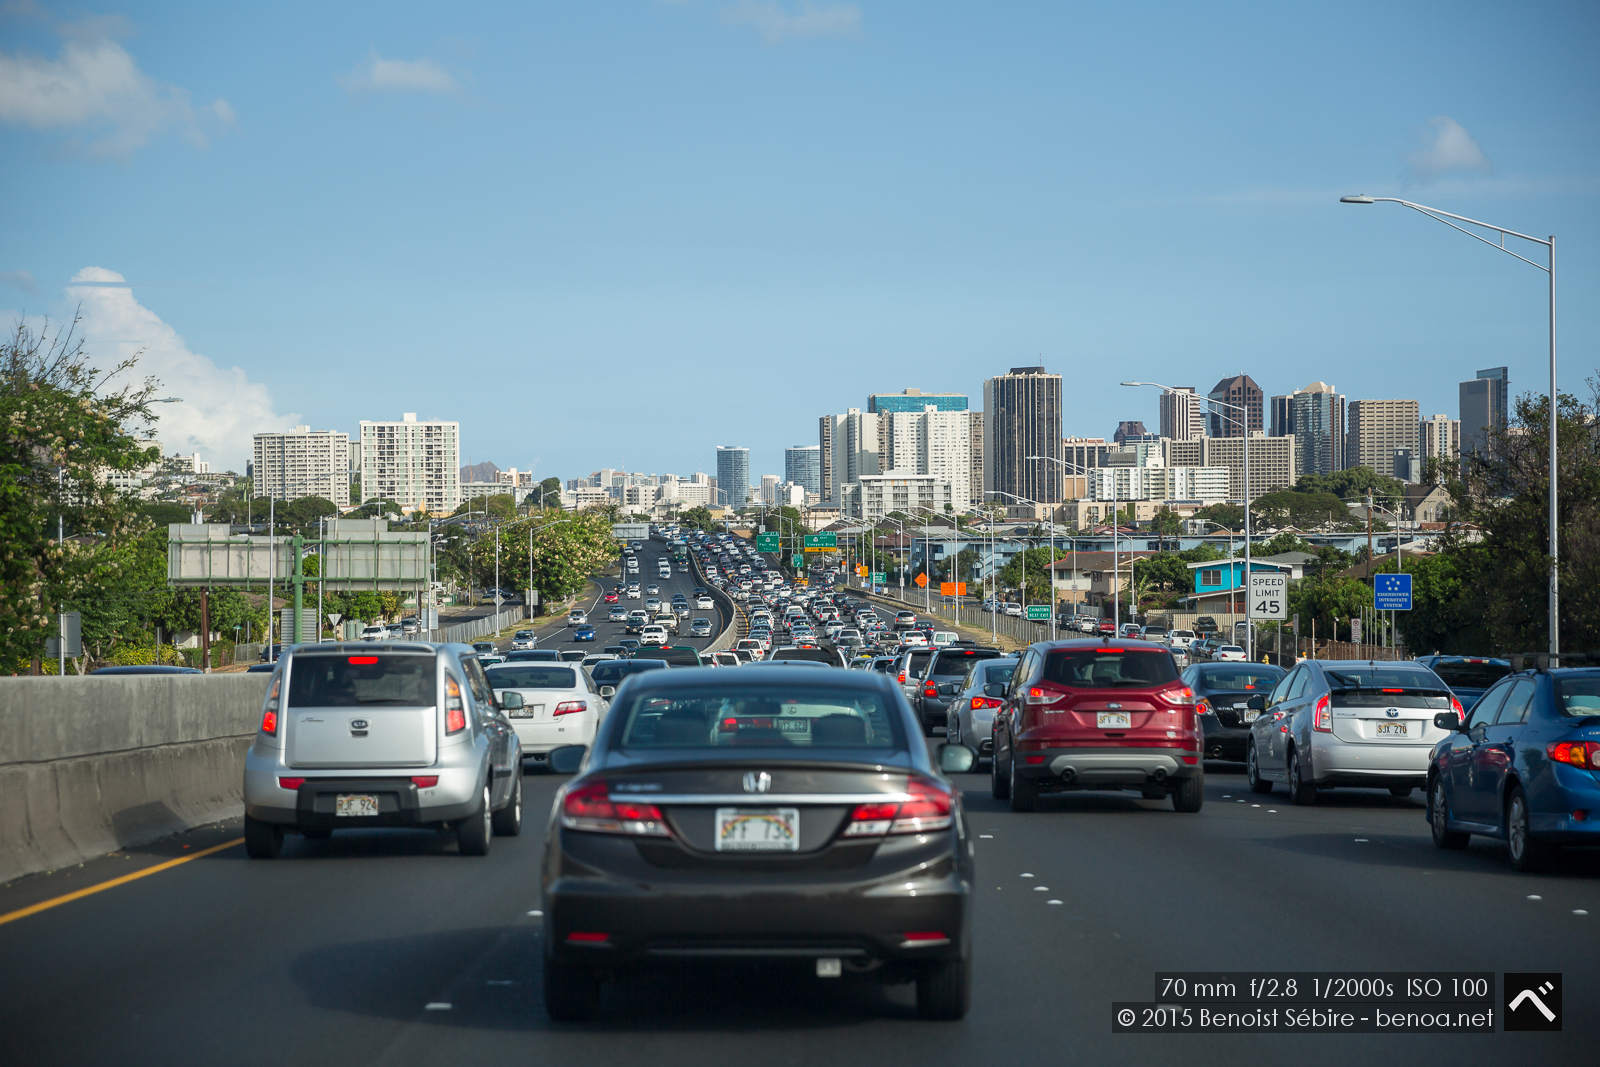 Honolulu Traffic Jam